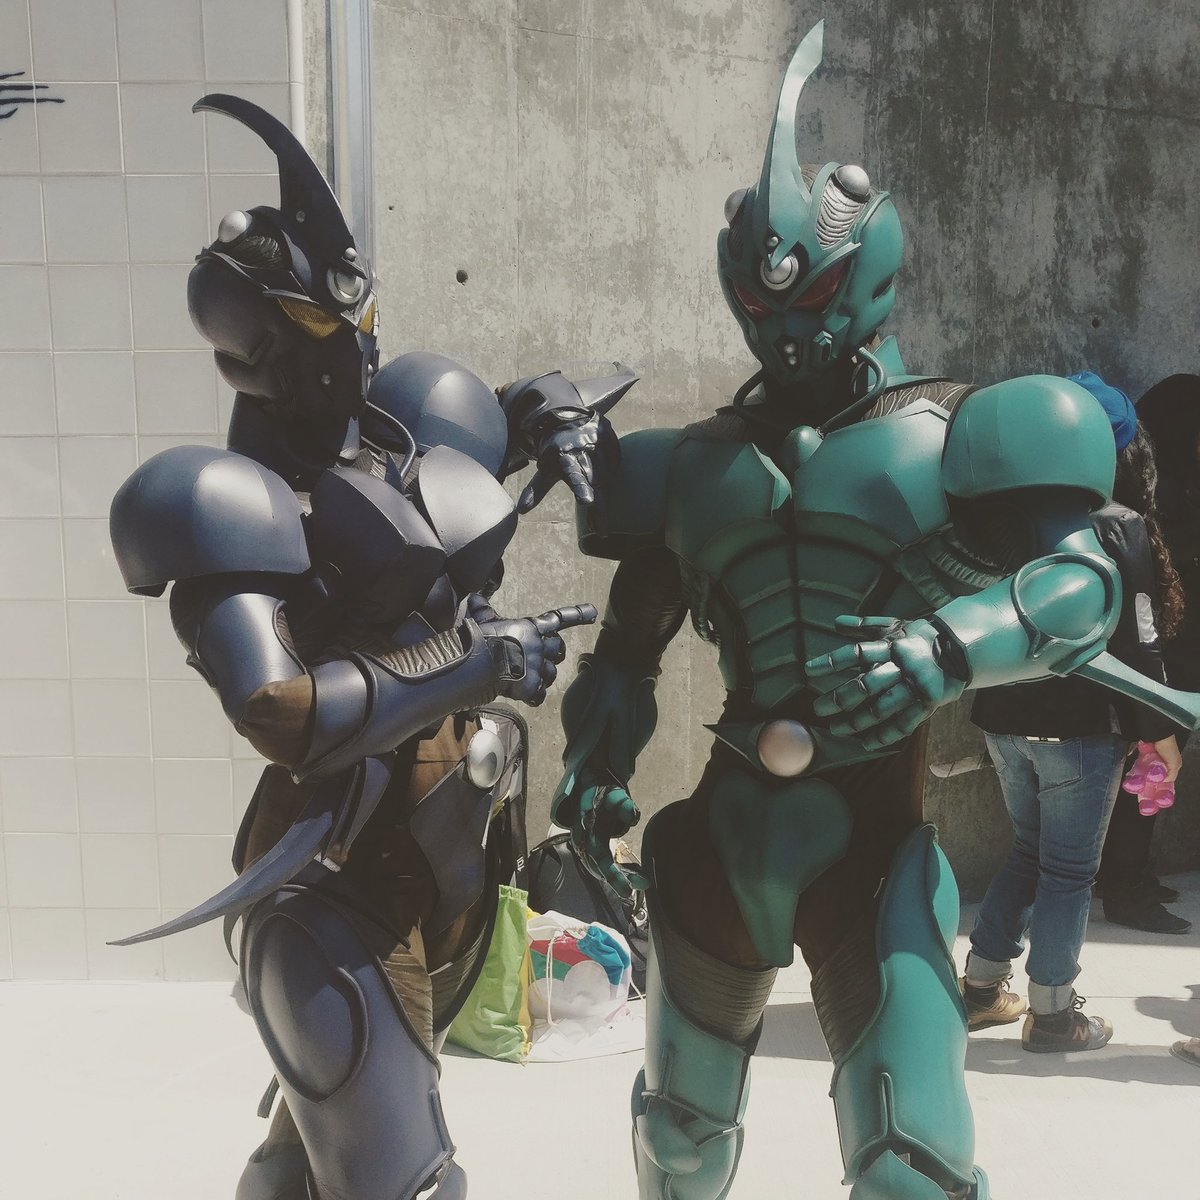 #guyver units boosted into #FanimeCon2017 #FanimeCon